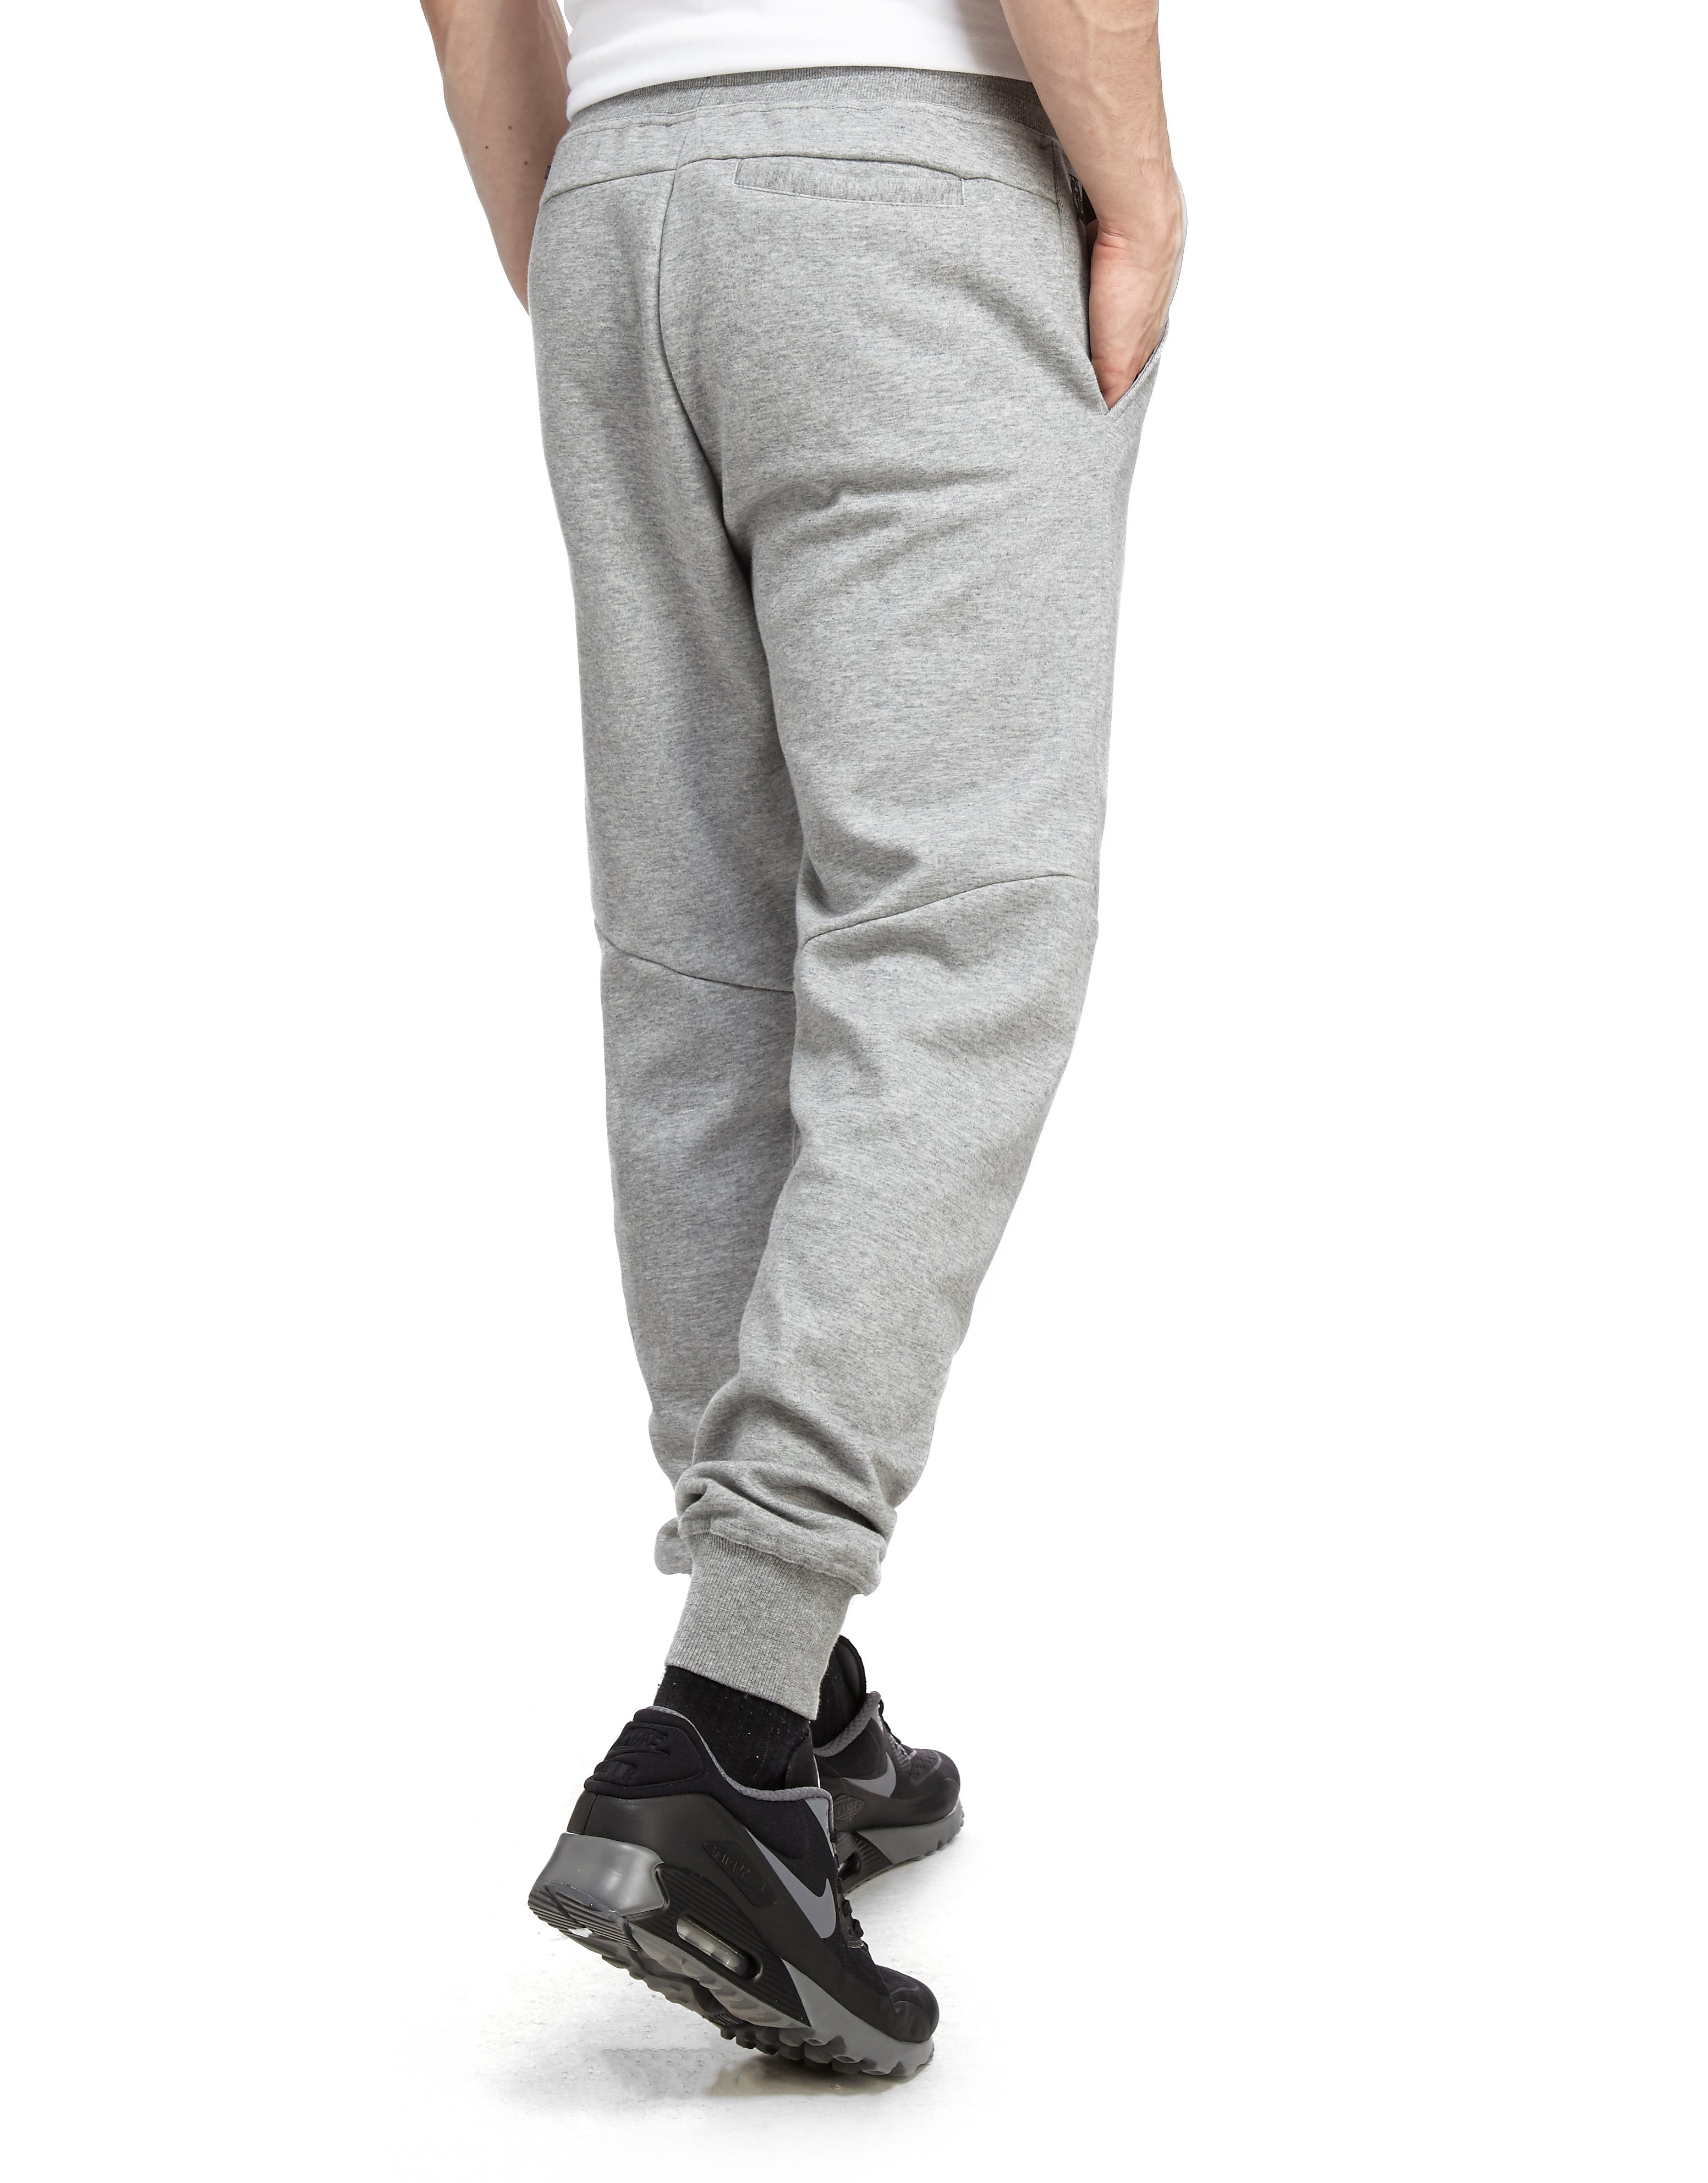 Duffer of St George Parallel Jogging Pants